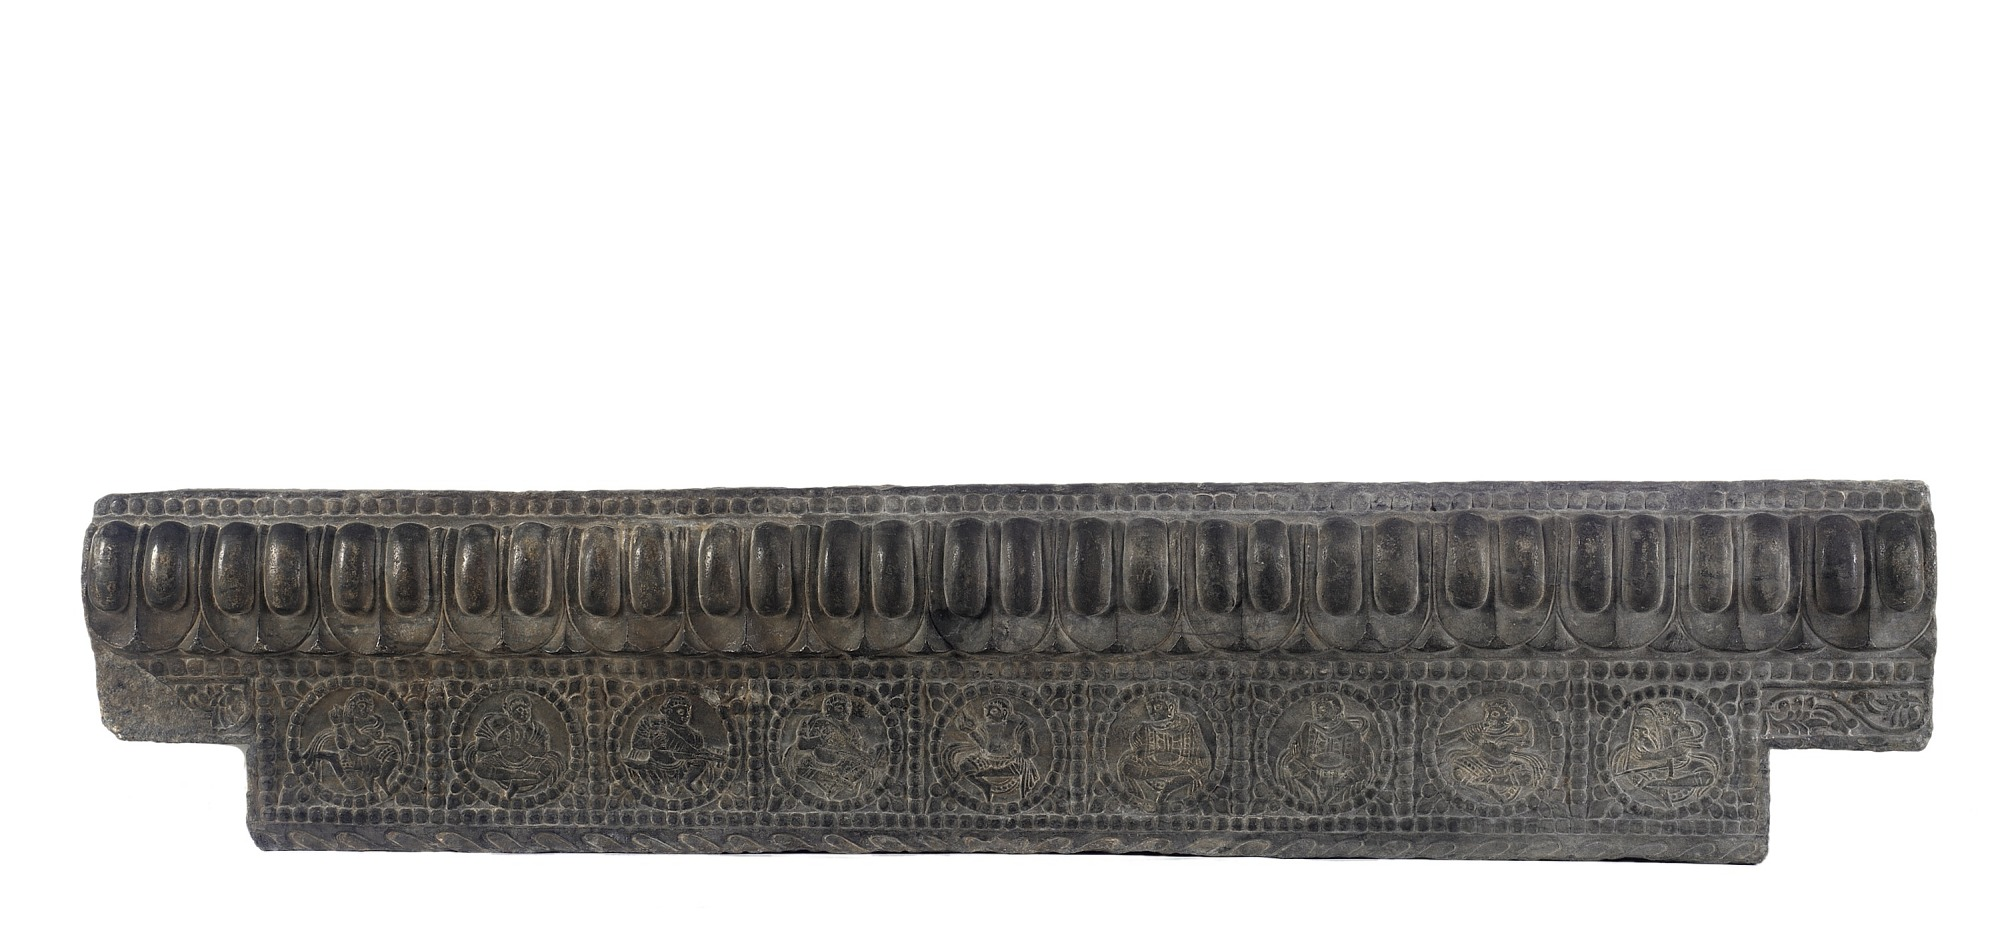 profile: Lateral stretcher from the base of a funerary couch with Sogdian musicians and a dancer